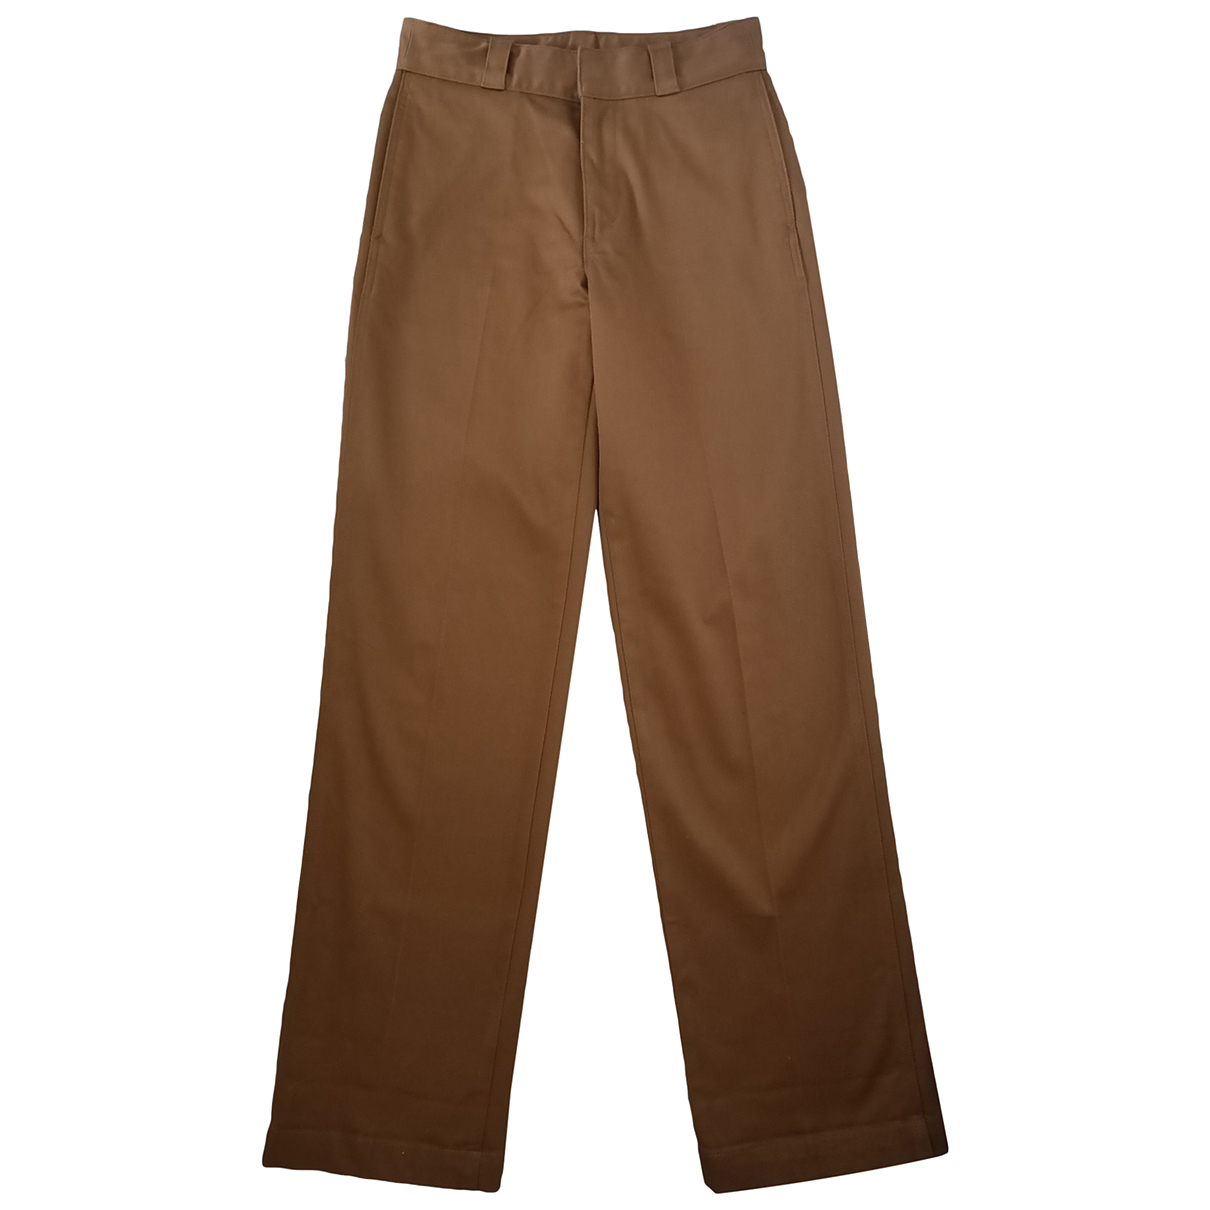 Uniqlo N Brown Cotton Trousers for Women 8 UK